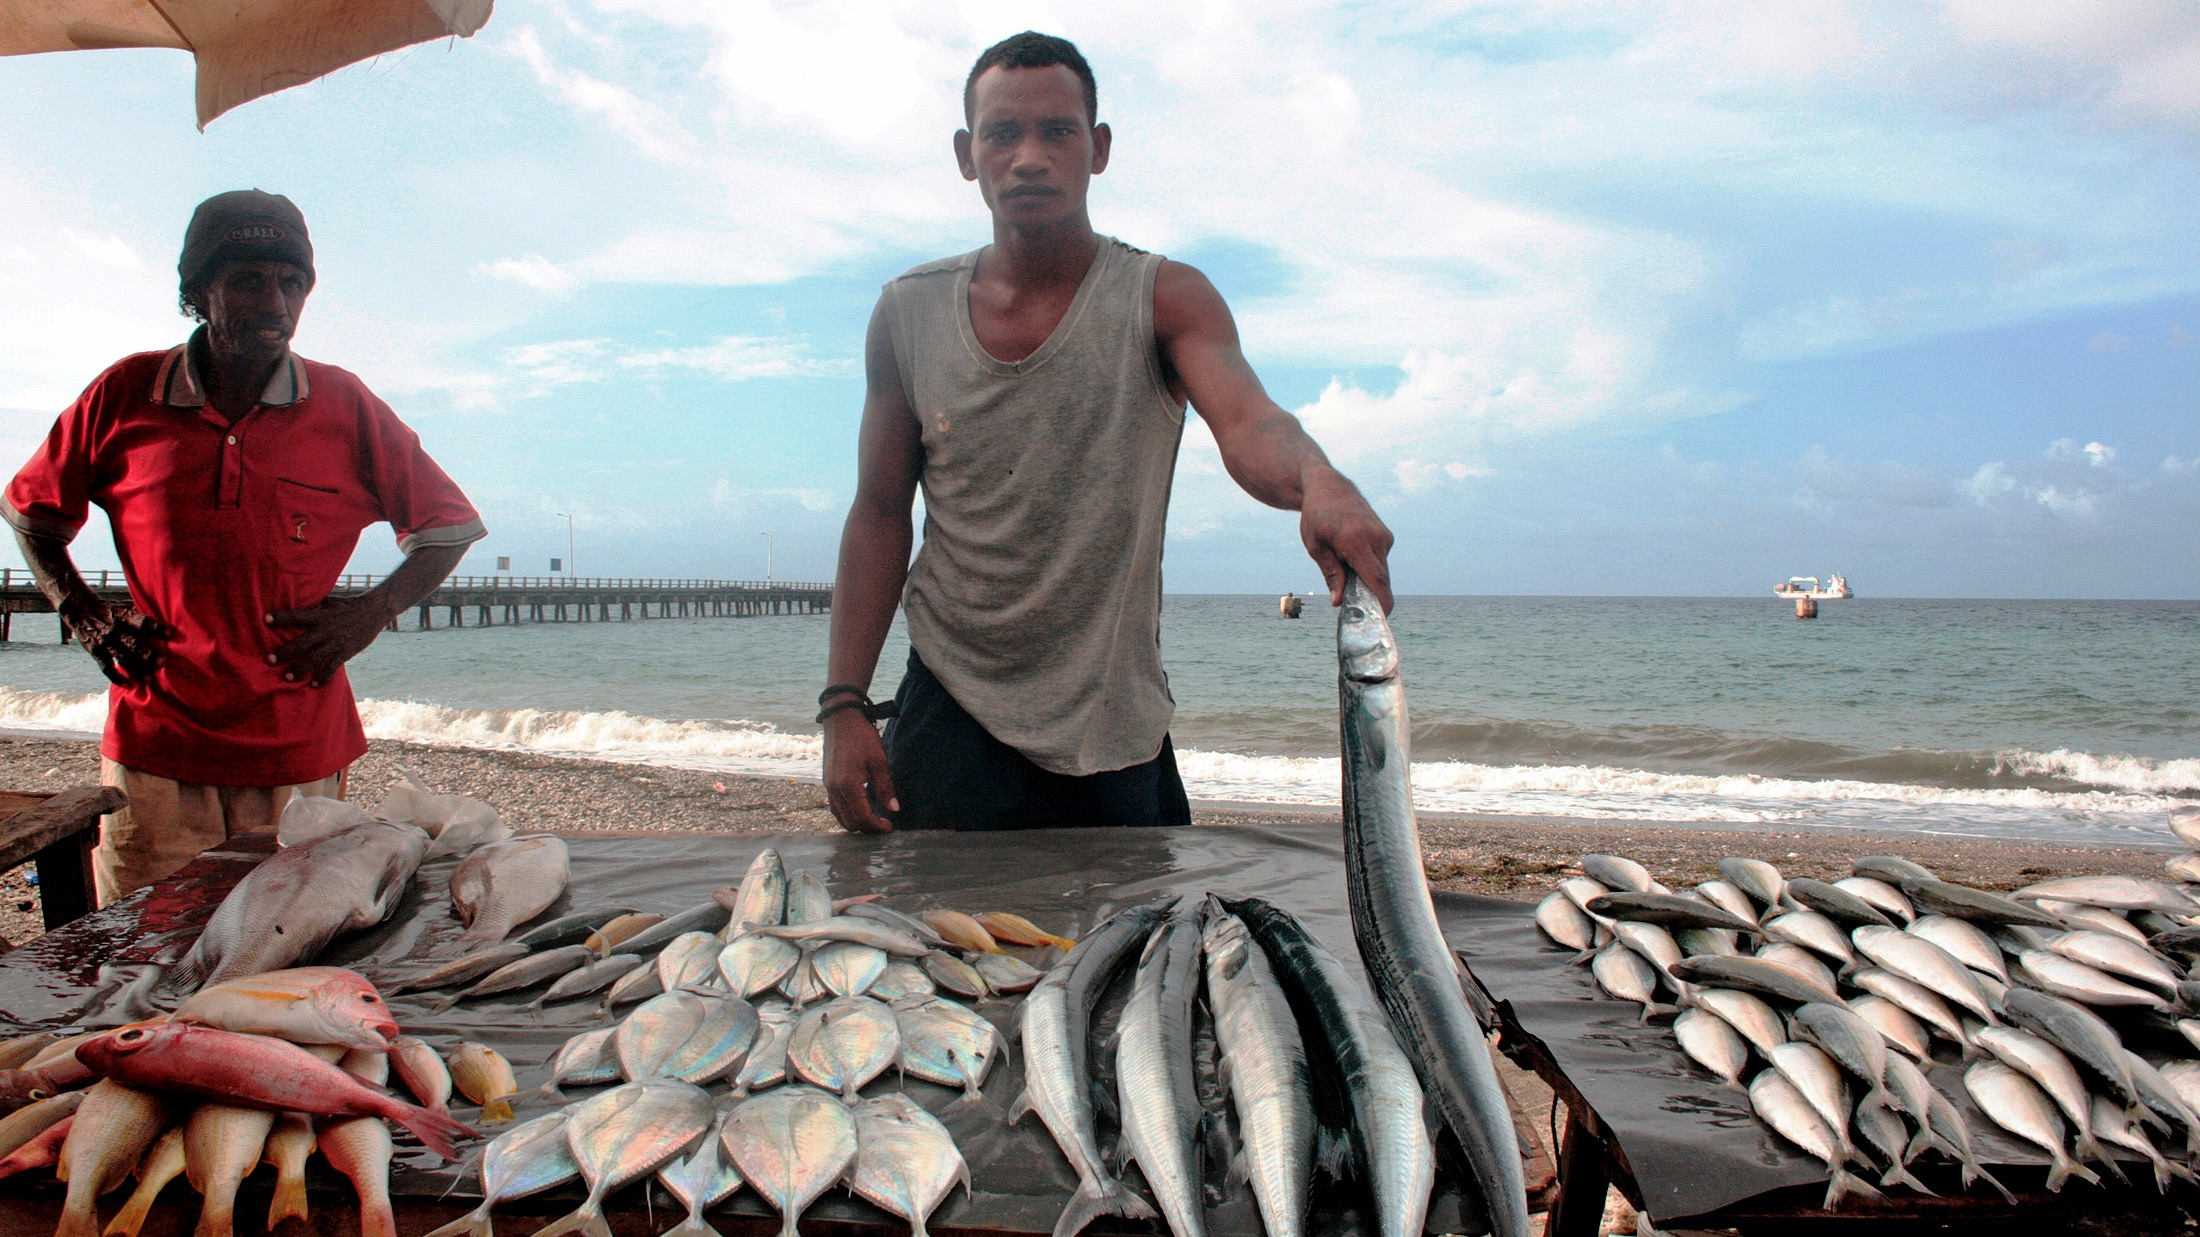 A Timorese fisherman displays his catch in the capital, Dili. Jobs are not easy to come by in contemporary Timor-Leste as the country's economy rests on oil revenues, which do not create employment for the mostly under-educated population.